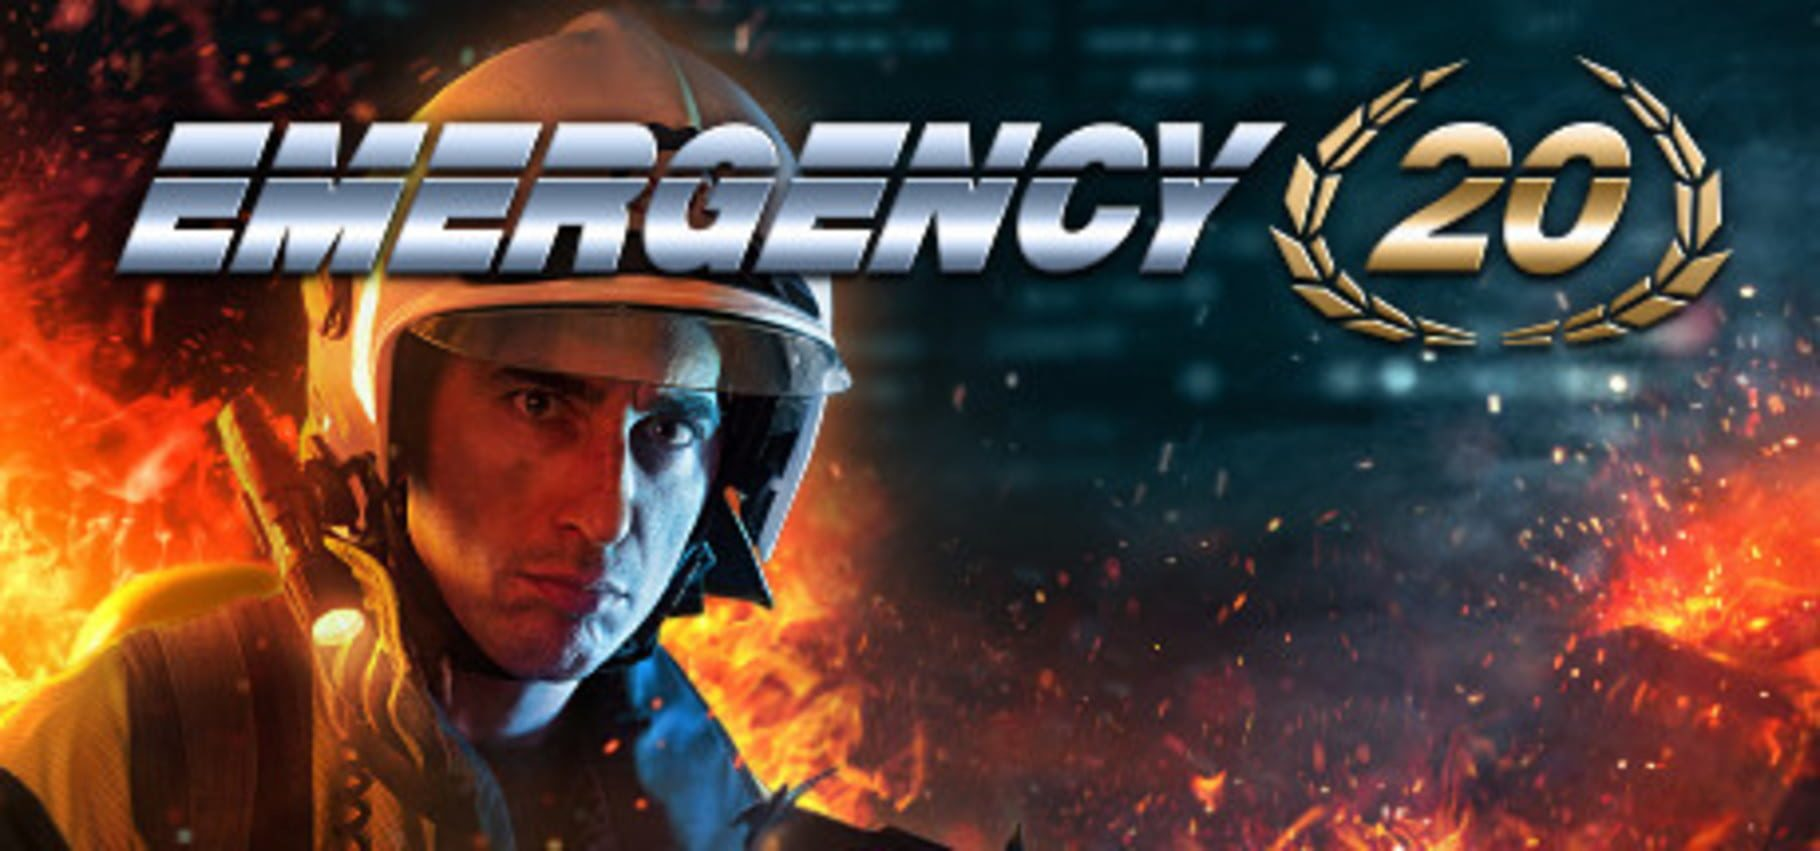 buy EMERGENCY 20 cd key for all platform